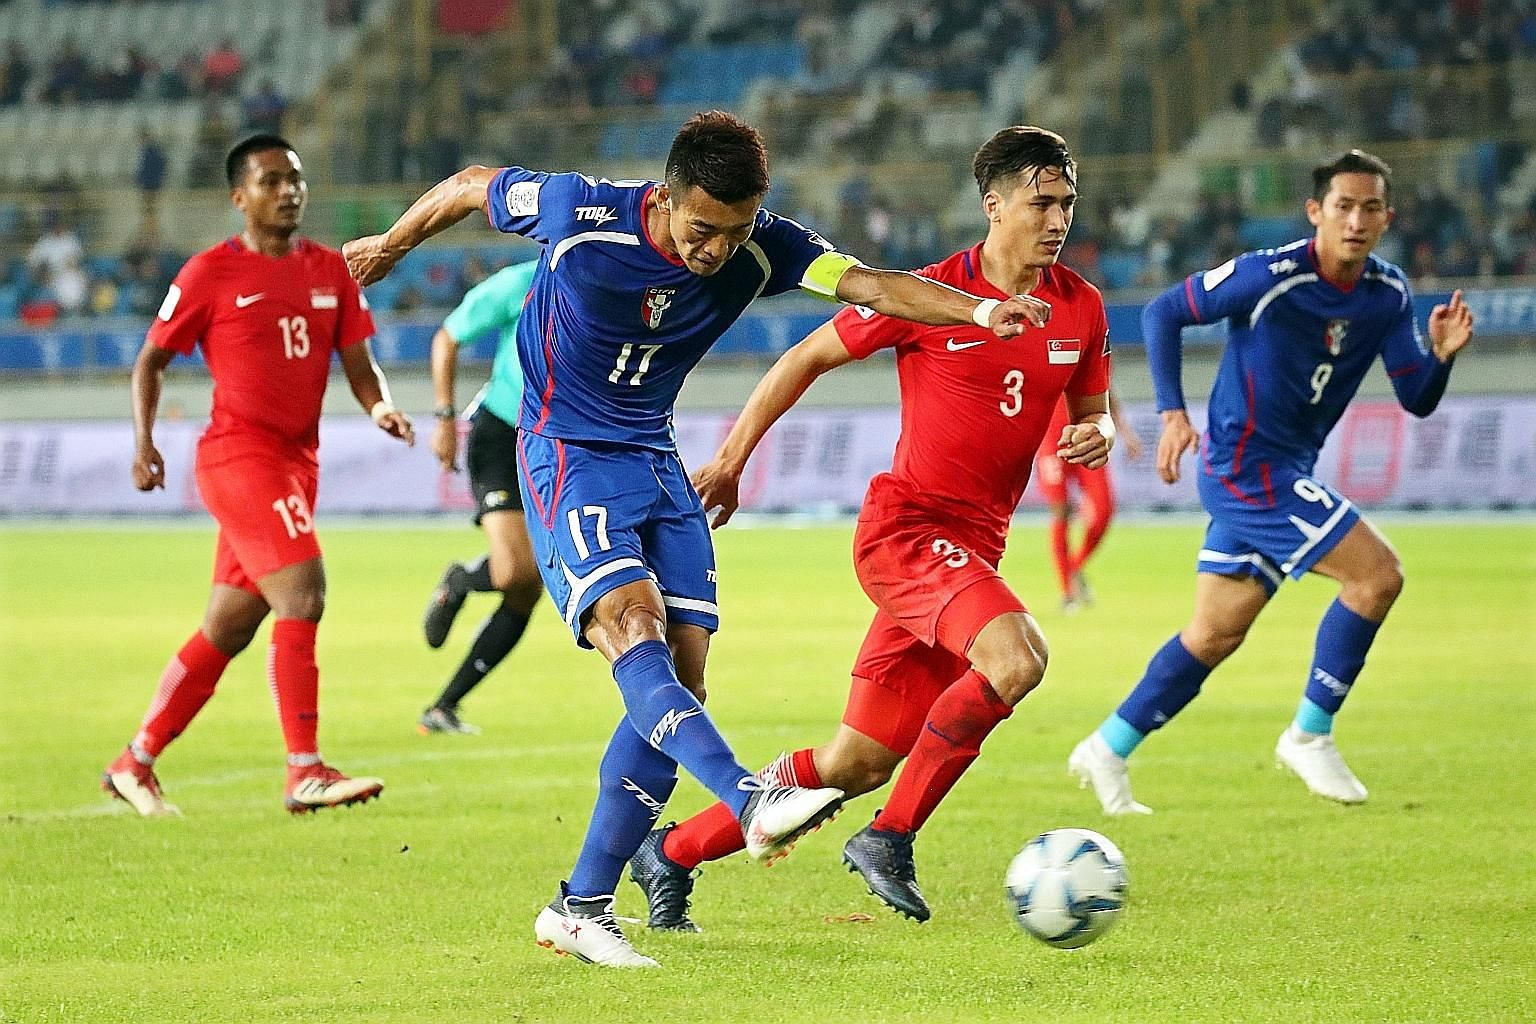 Chinese Taipei captain Chen Po-liang getting to the ball before Singapore's Anders Aplin to score the only goal of the Asian Cup Group E qualifier in Taipei last night.